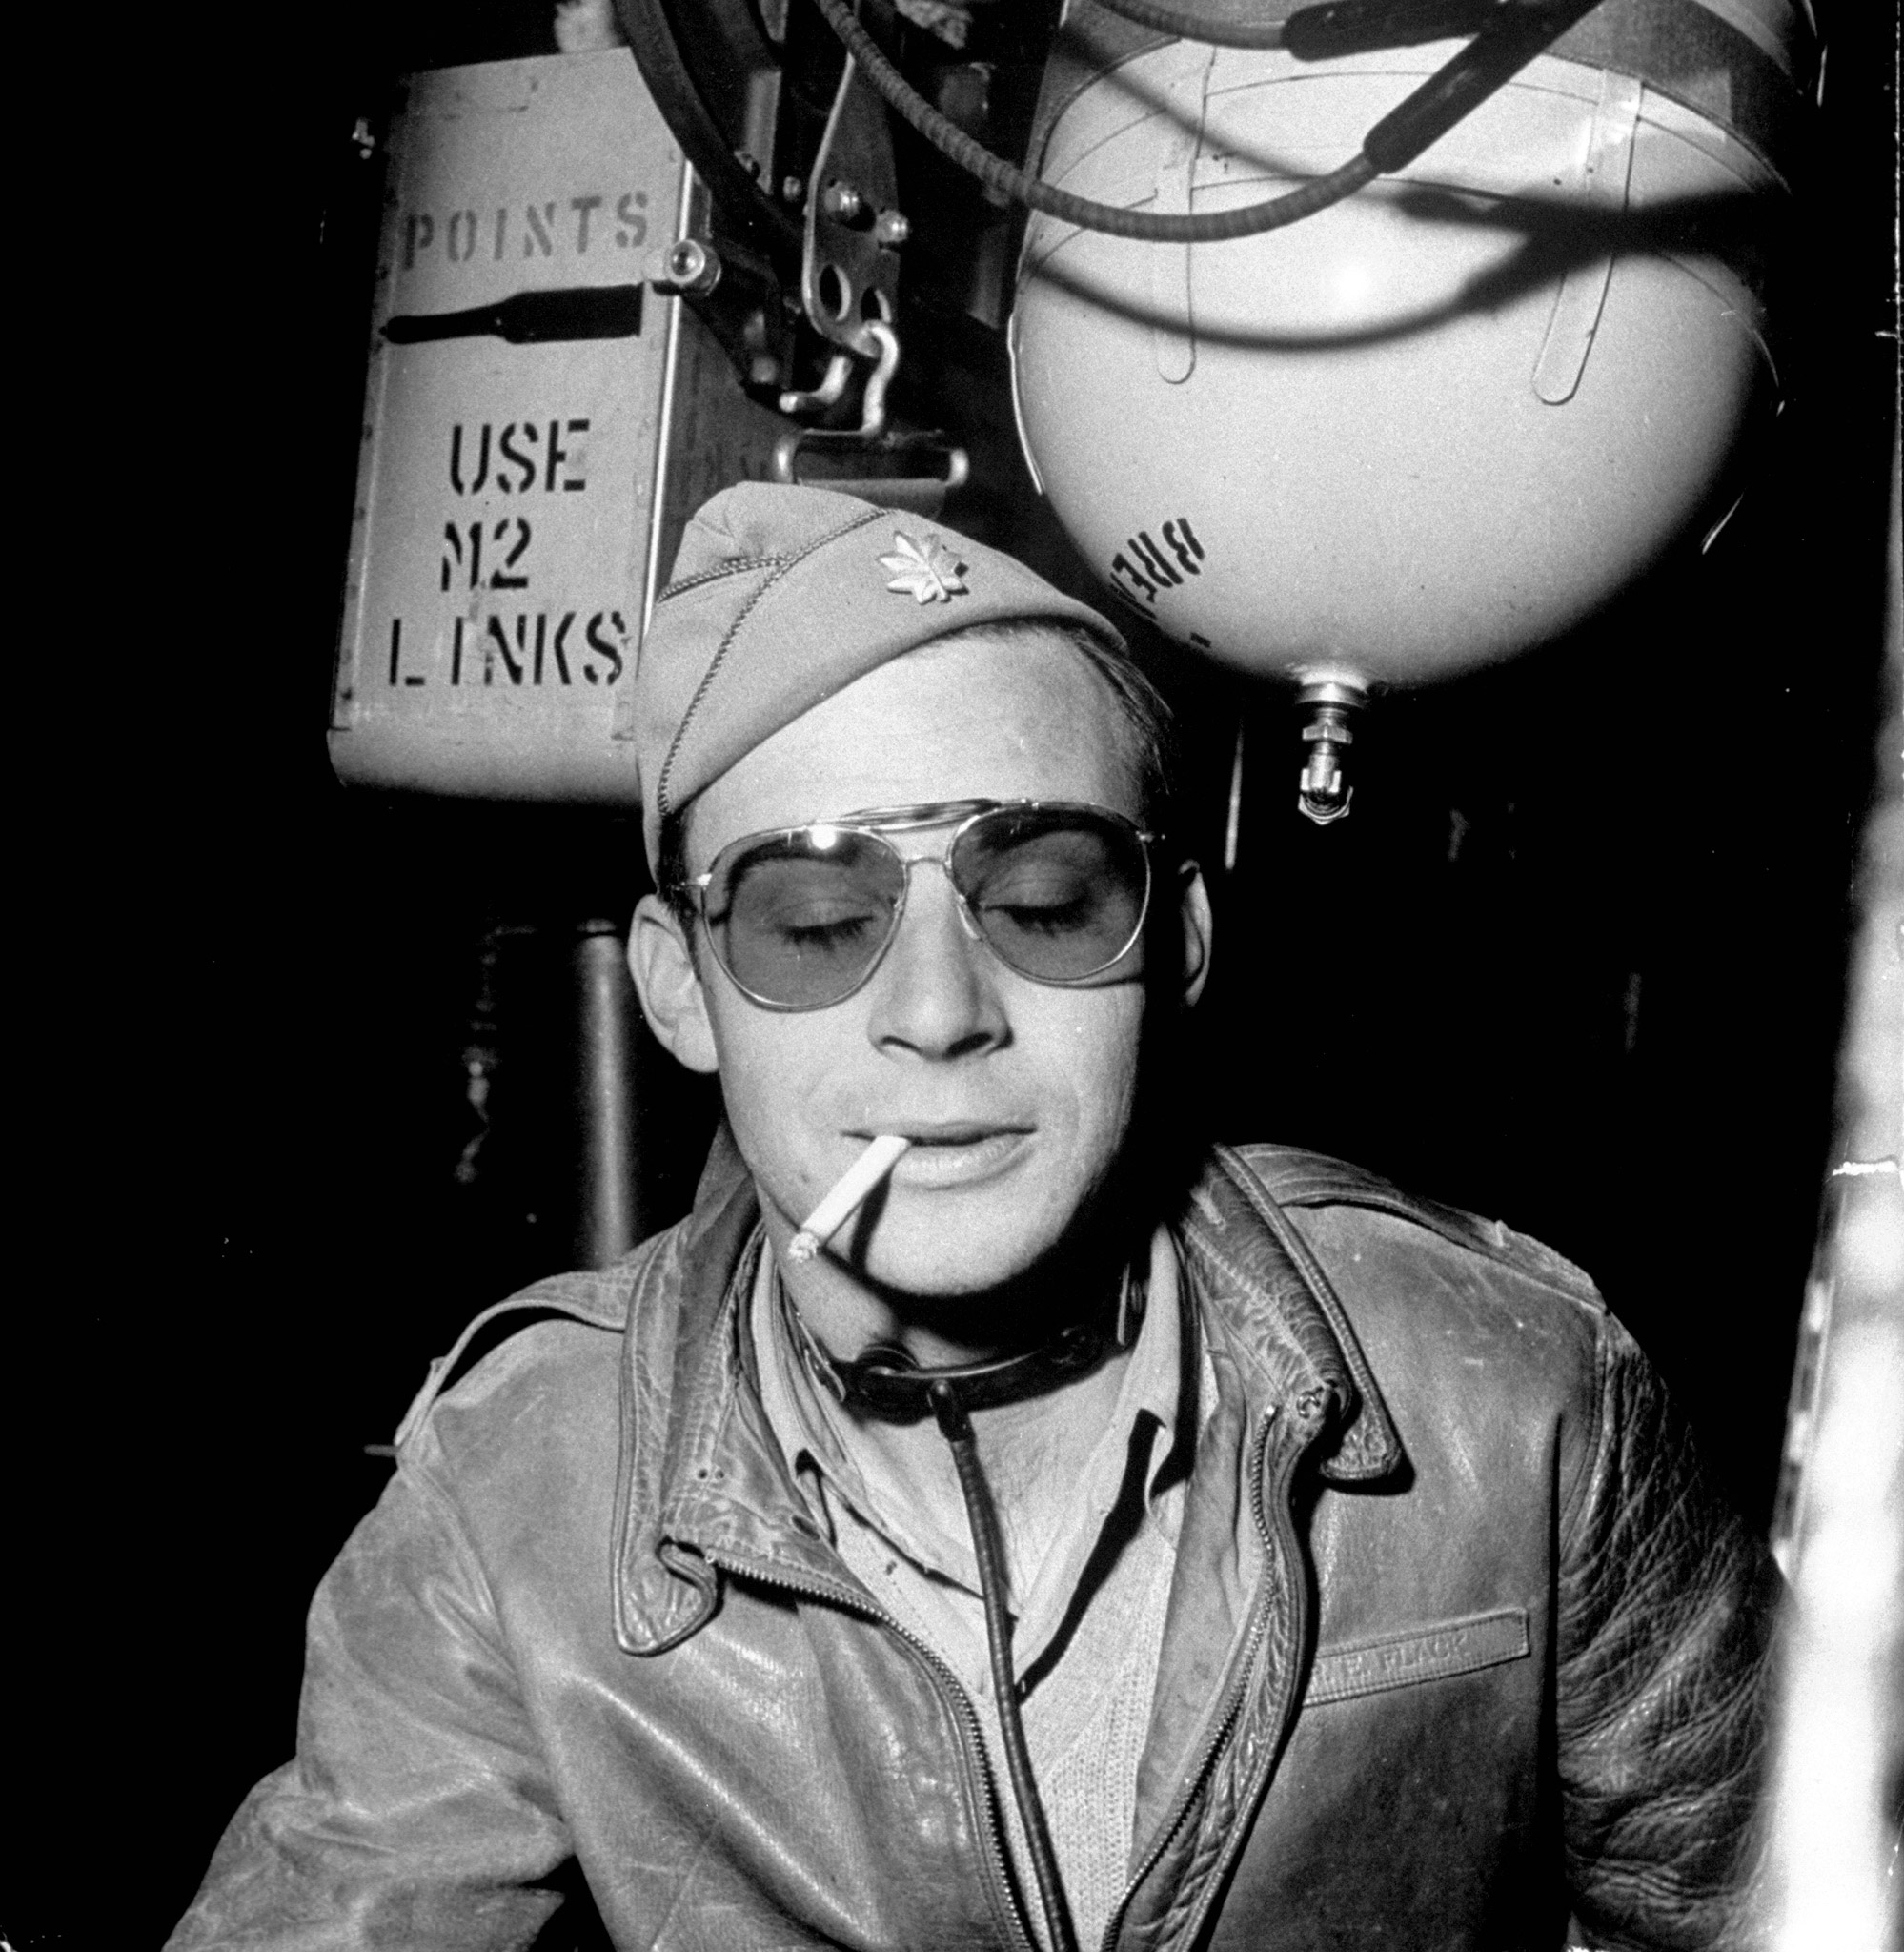 """Major  Rudolph Flack, Squadron Commander/Pilot of B-17 Flying Fortress """"Little Bill"""" relaxing with a cigarette inside his plane after returning from successful bombing mission in Tunisia, at Sahara desert airdrome."""